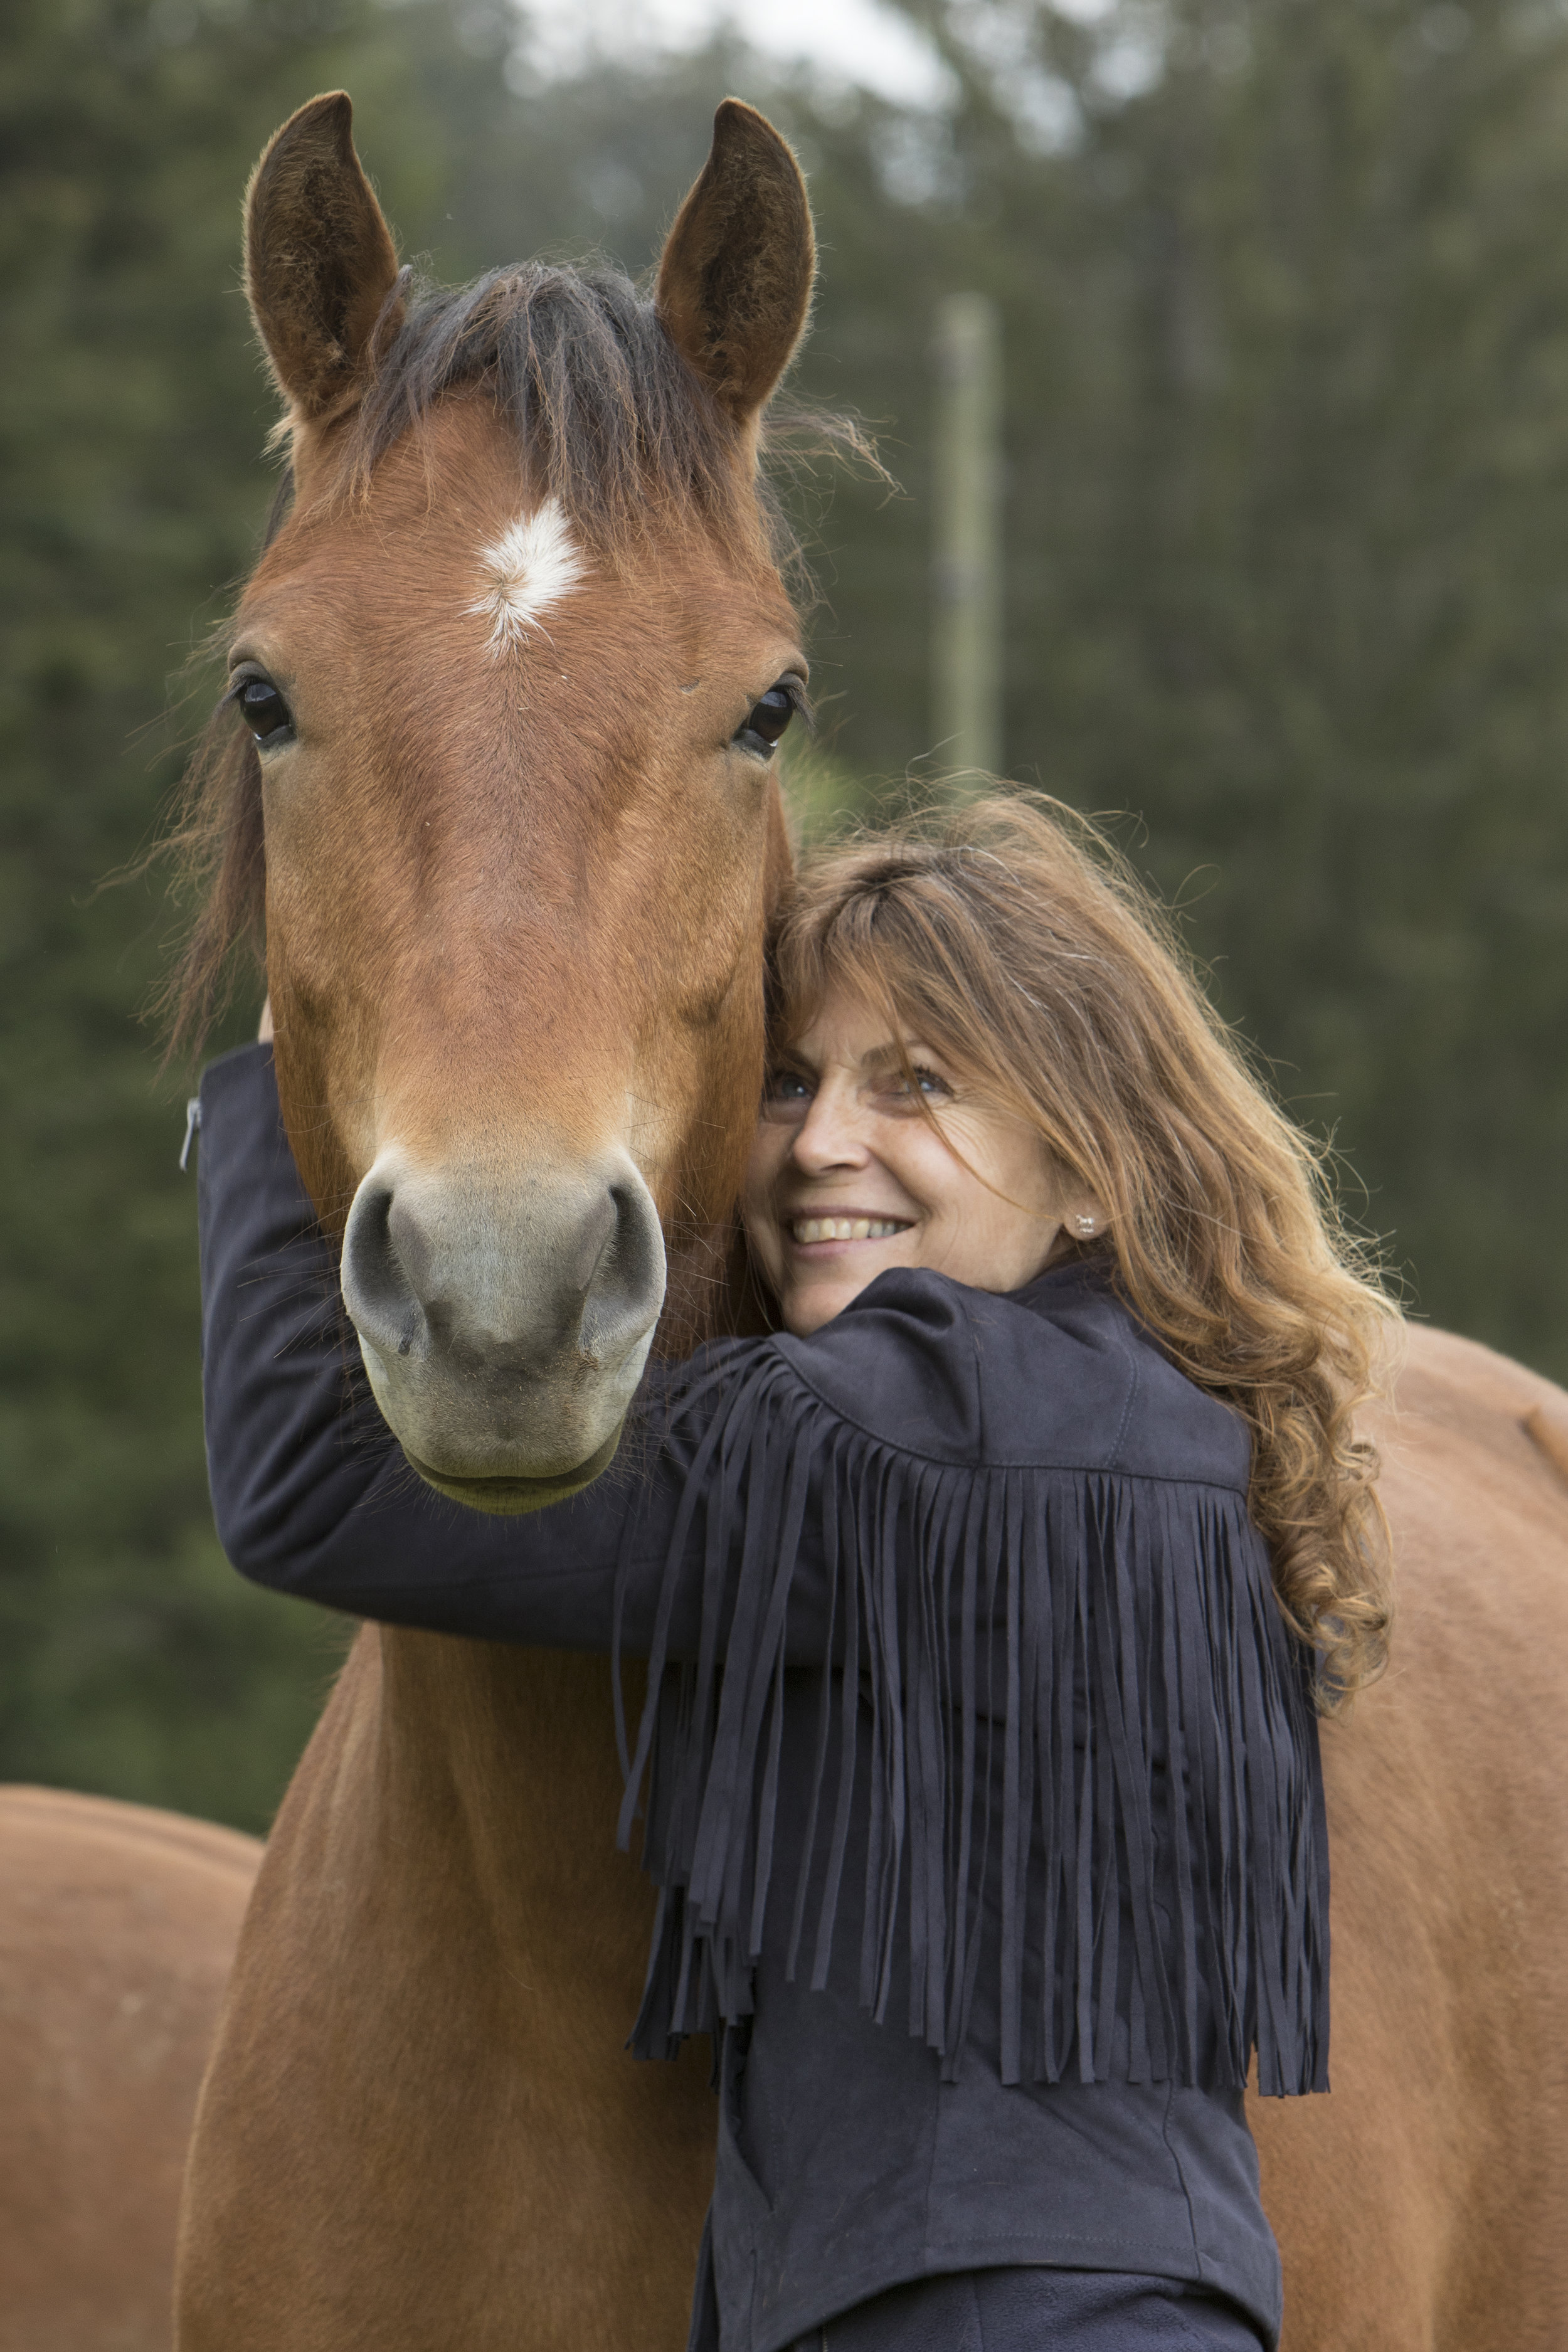 This documentary by Swiss filmmaker Jolanda Ellenberger, whose film Freedom of the Heart screened at The Whinnies! at Napa in 2014, explores the friendship between two beings so different and yet so alike. A friendship where both sides long to connect their heart-space.